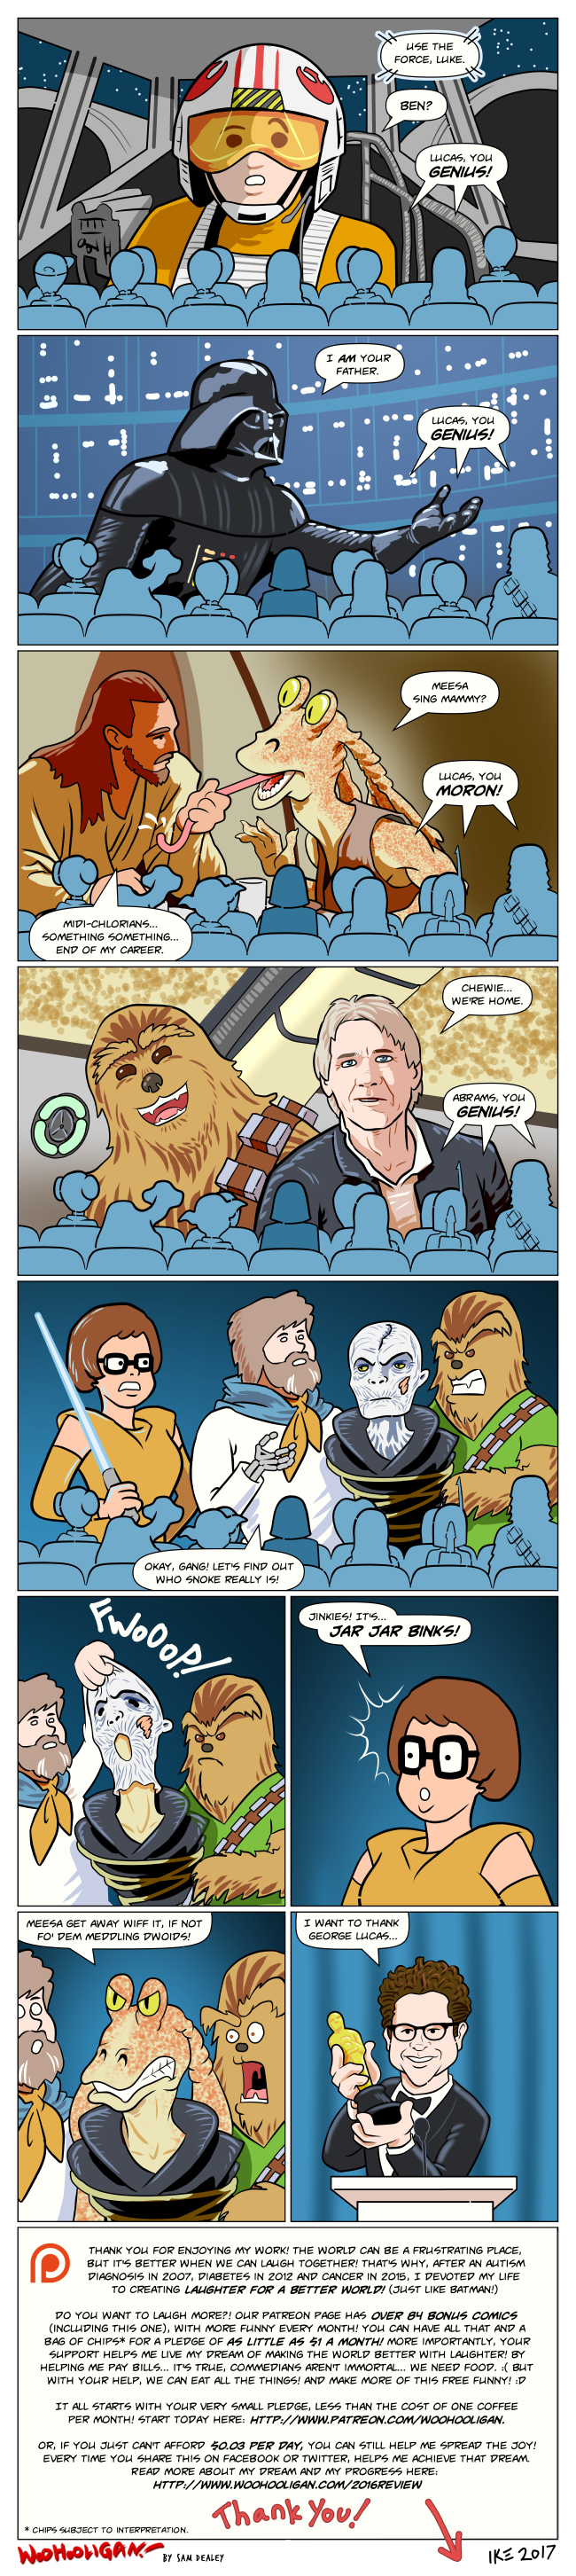 Star Wars Fan Theories by woohooligan